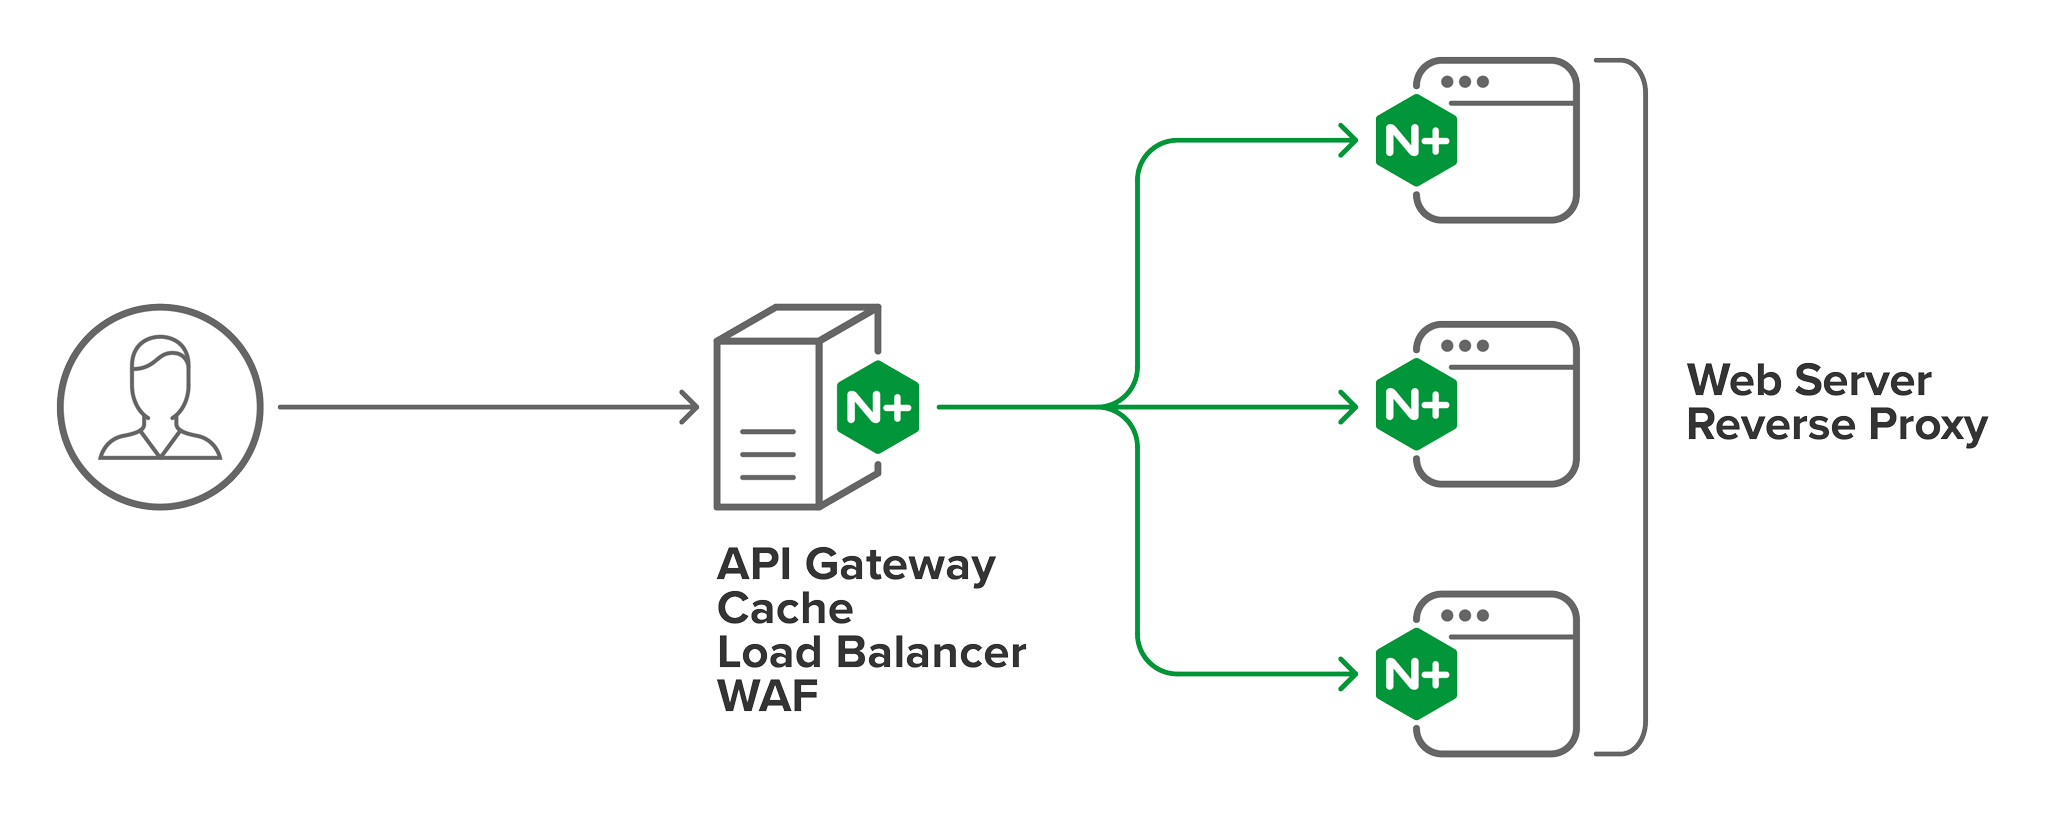 NGINX-Plus-product-page_topology@2x